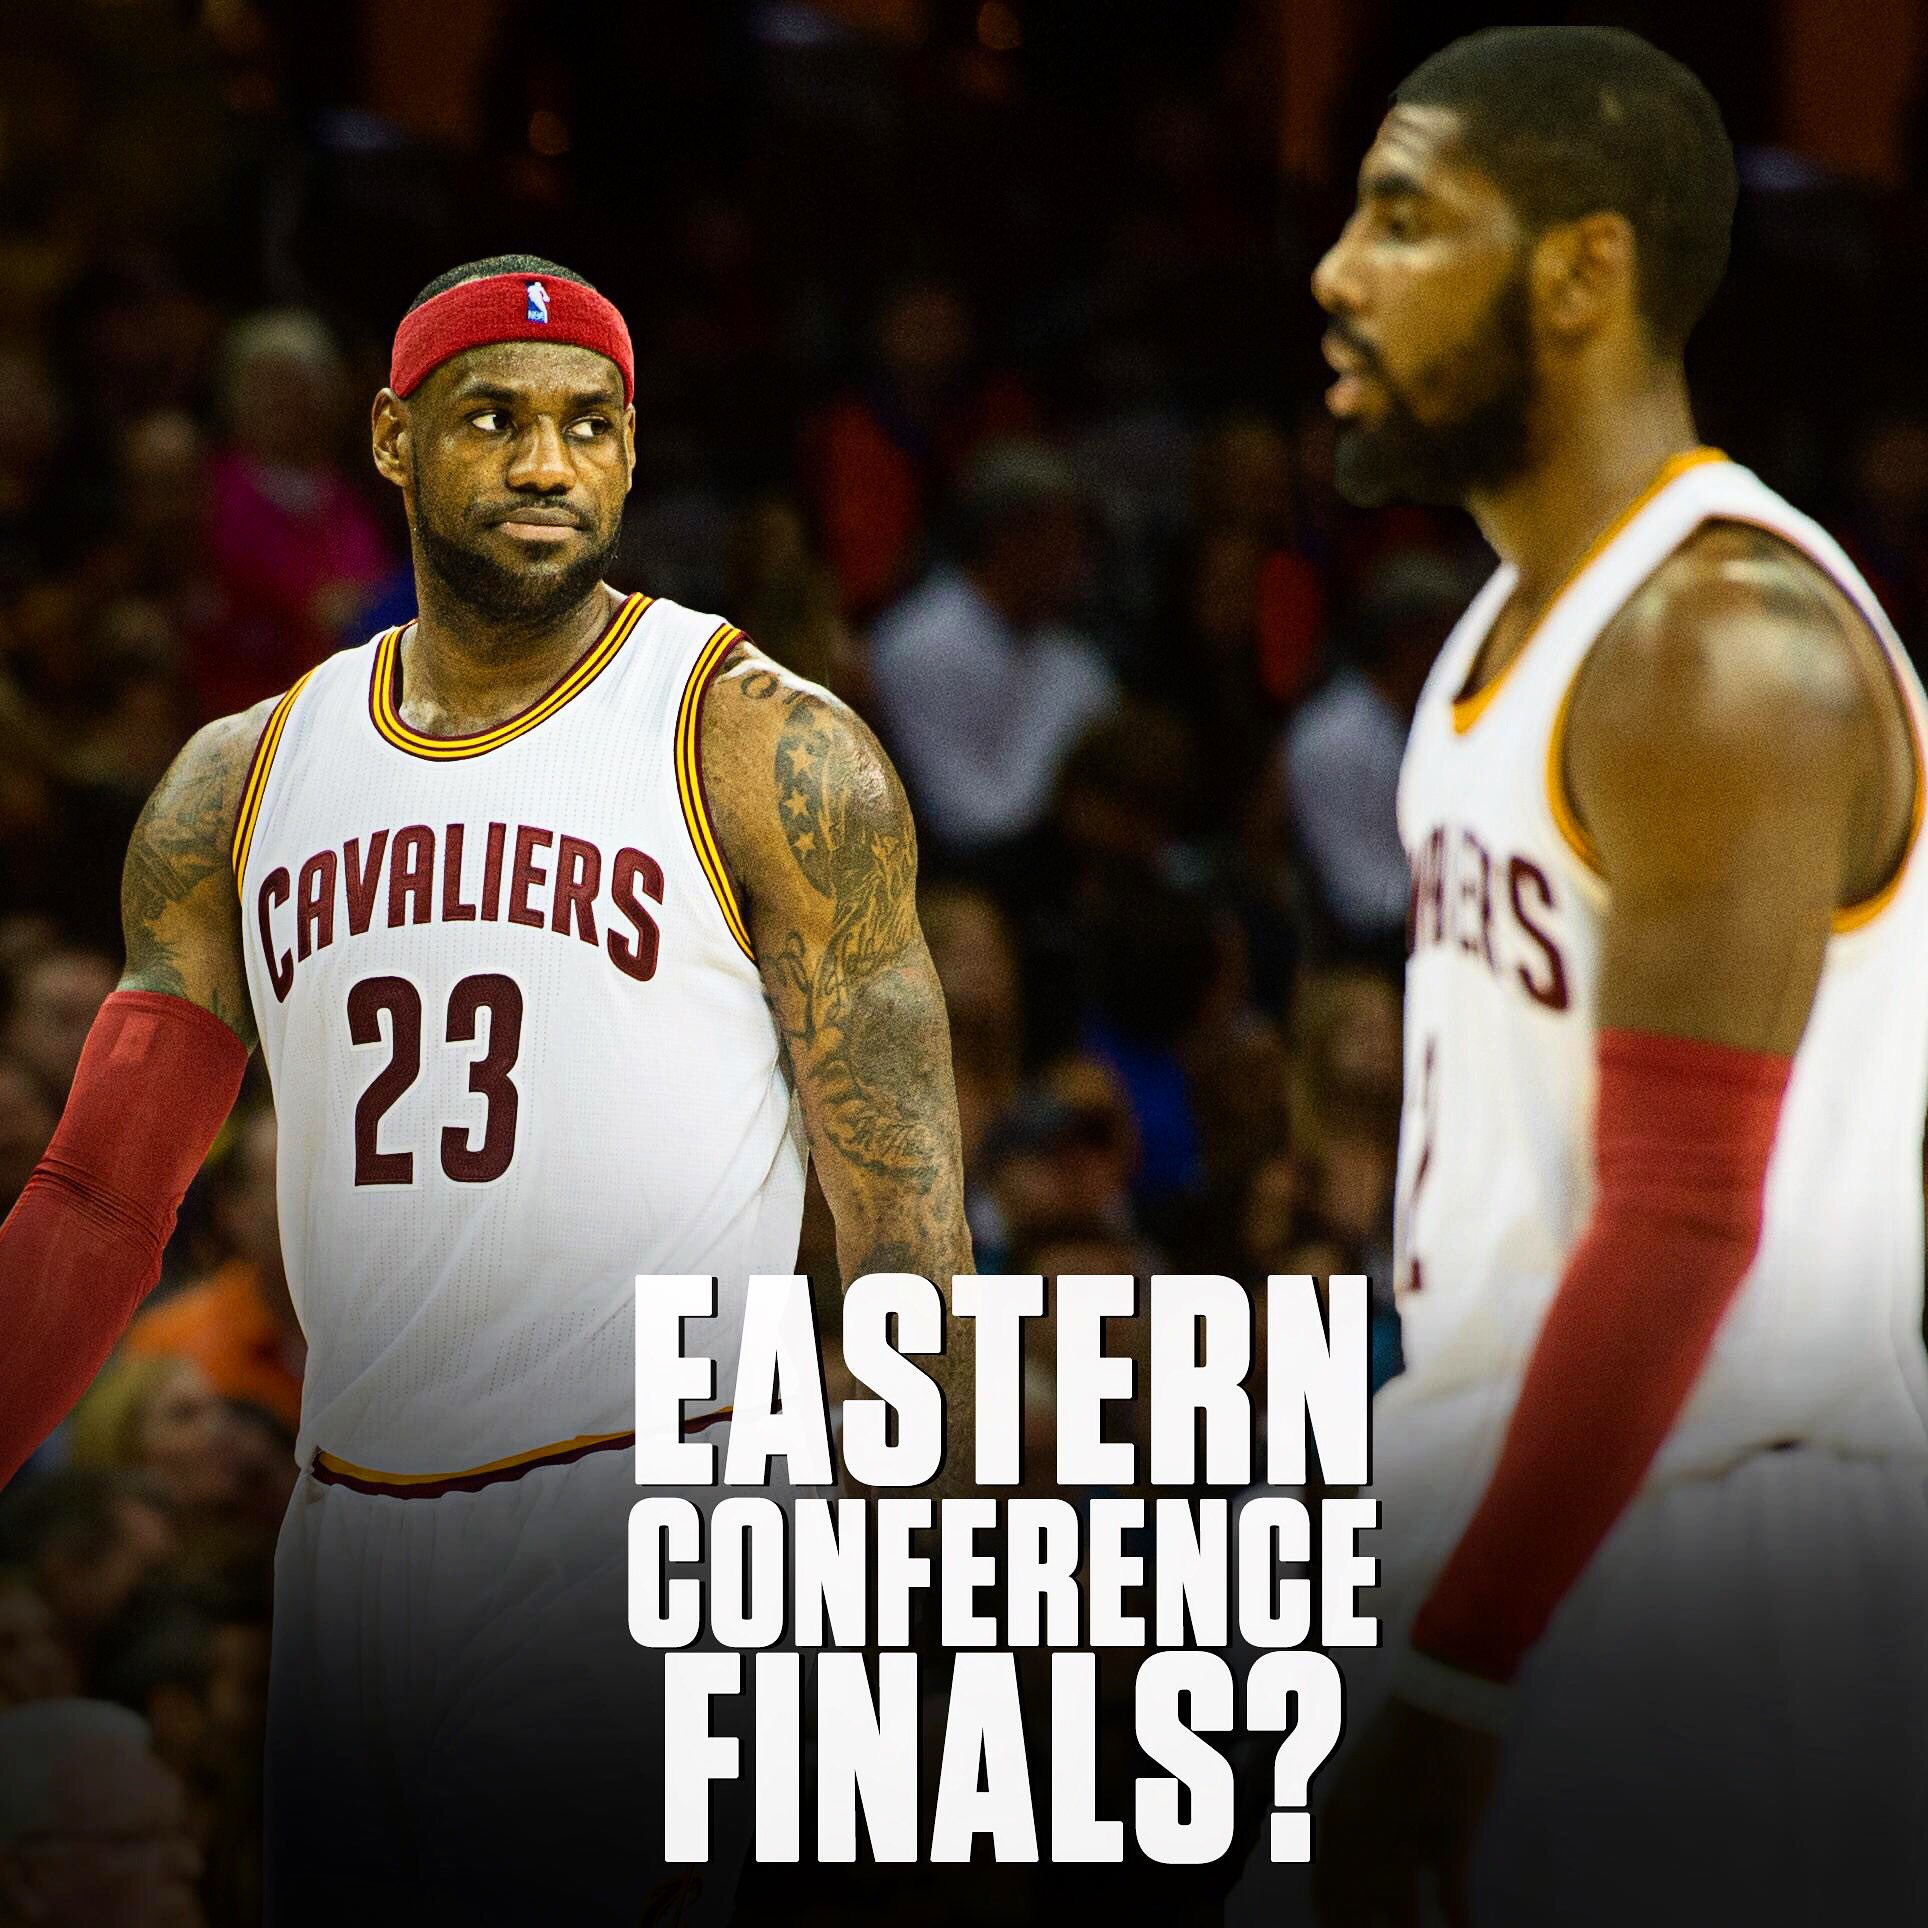 Eastern Conference finals this year could feature LeBron VERSUS Kyrie. https://t.co/bvluy9qS7g